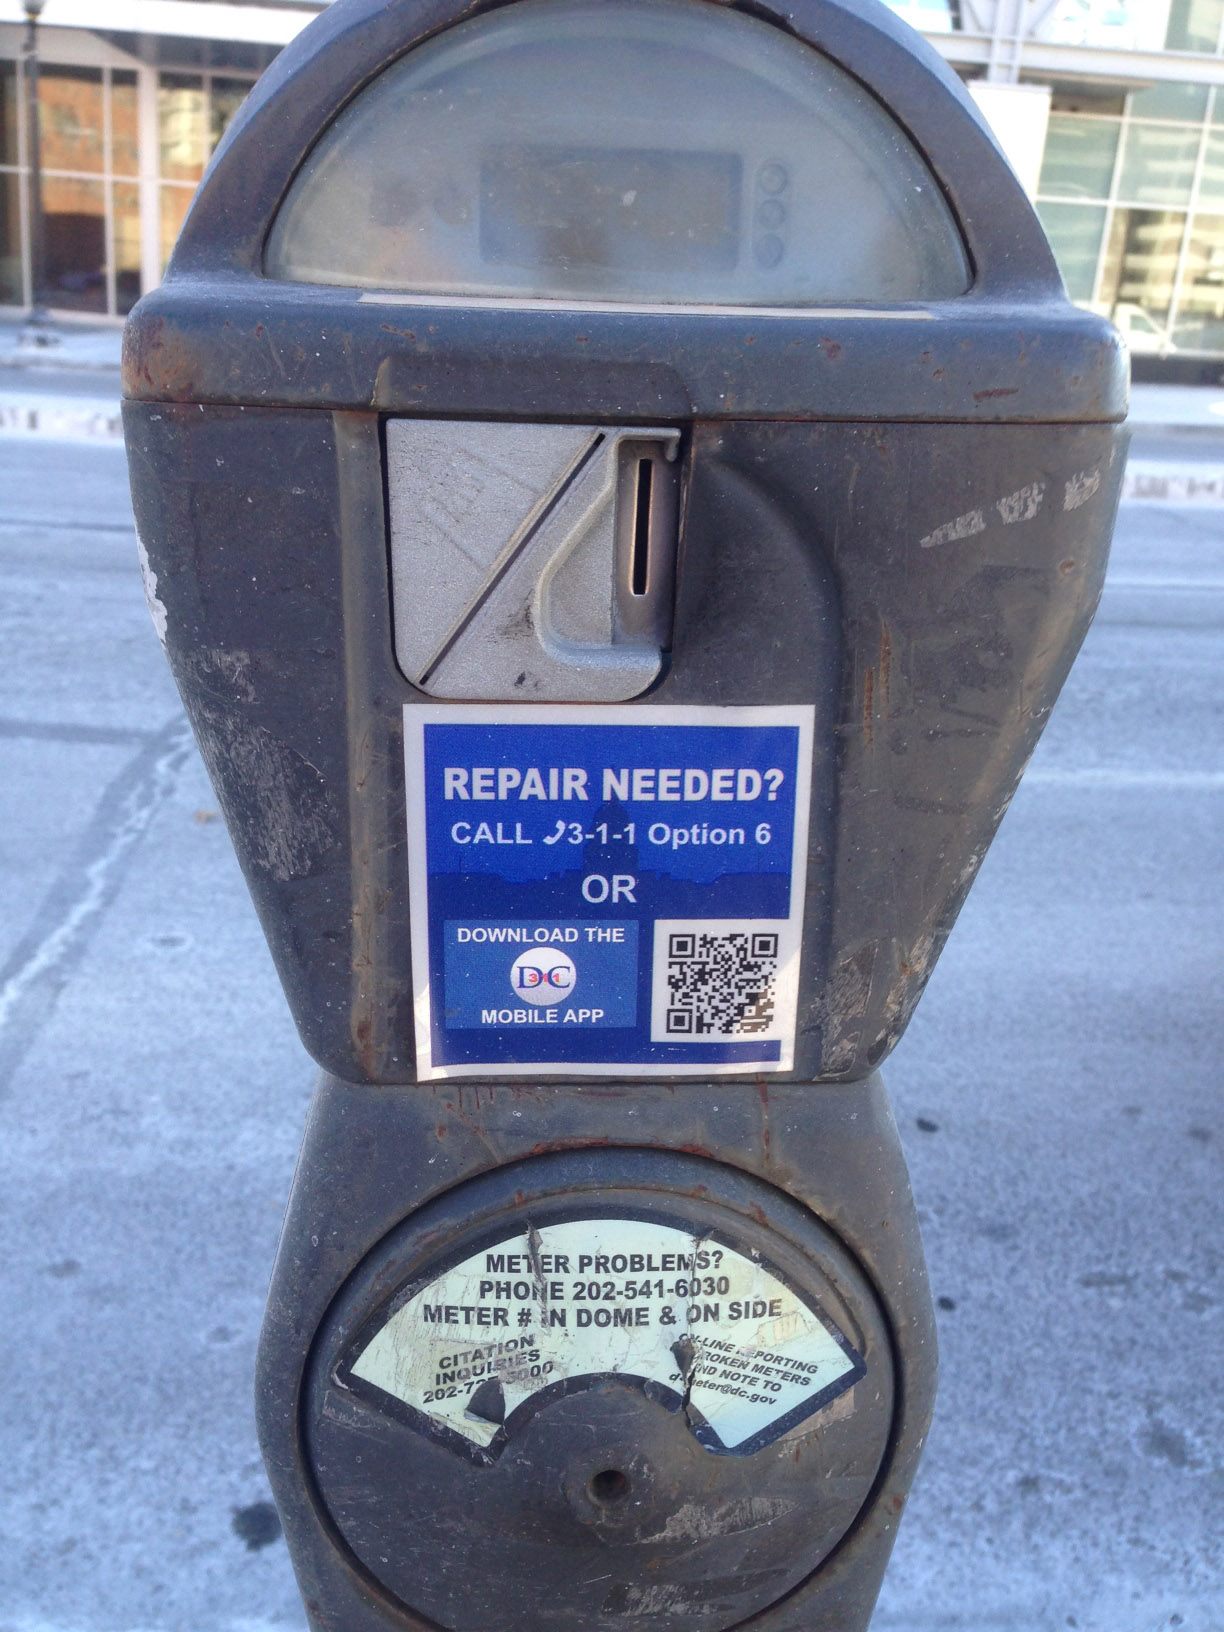 Ticketbuster: Parked at a broken meter in D.C.? Confusion rules the day